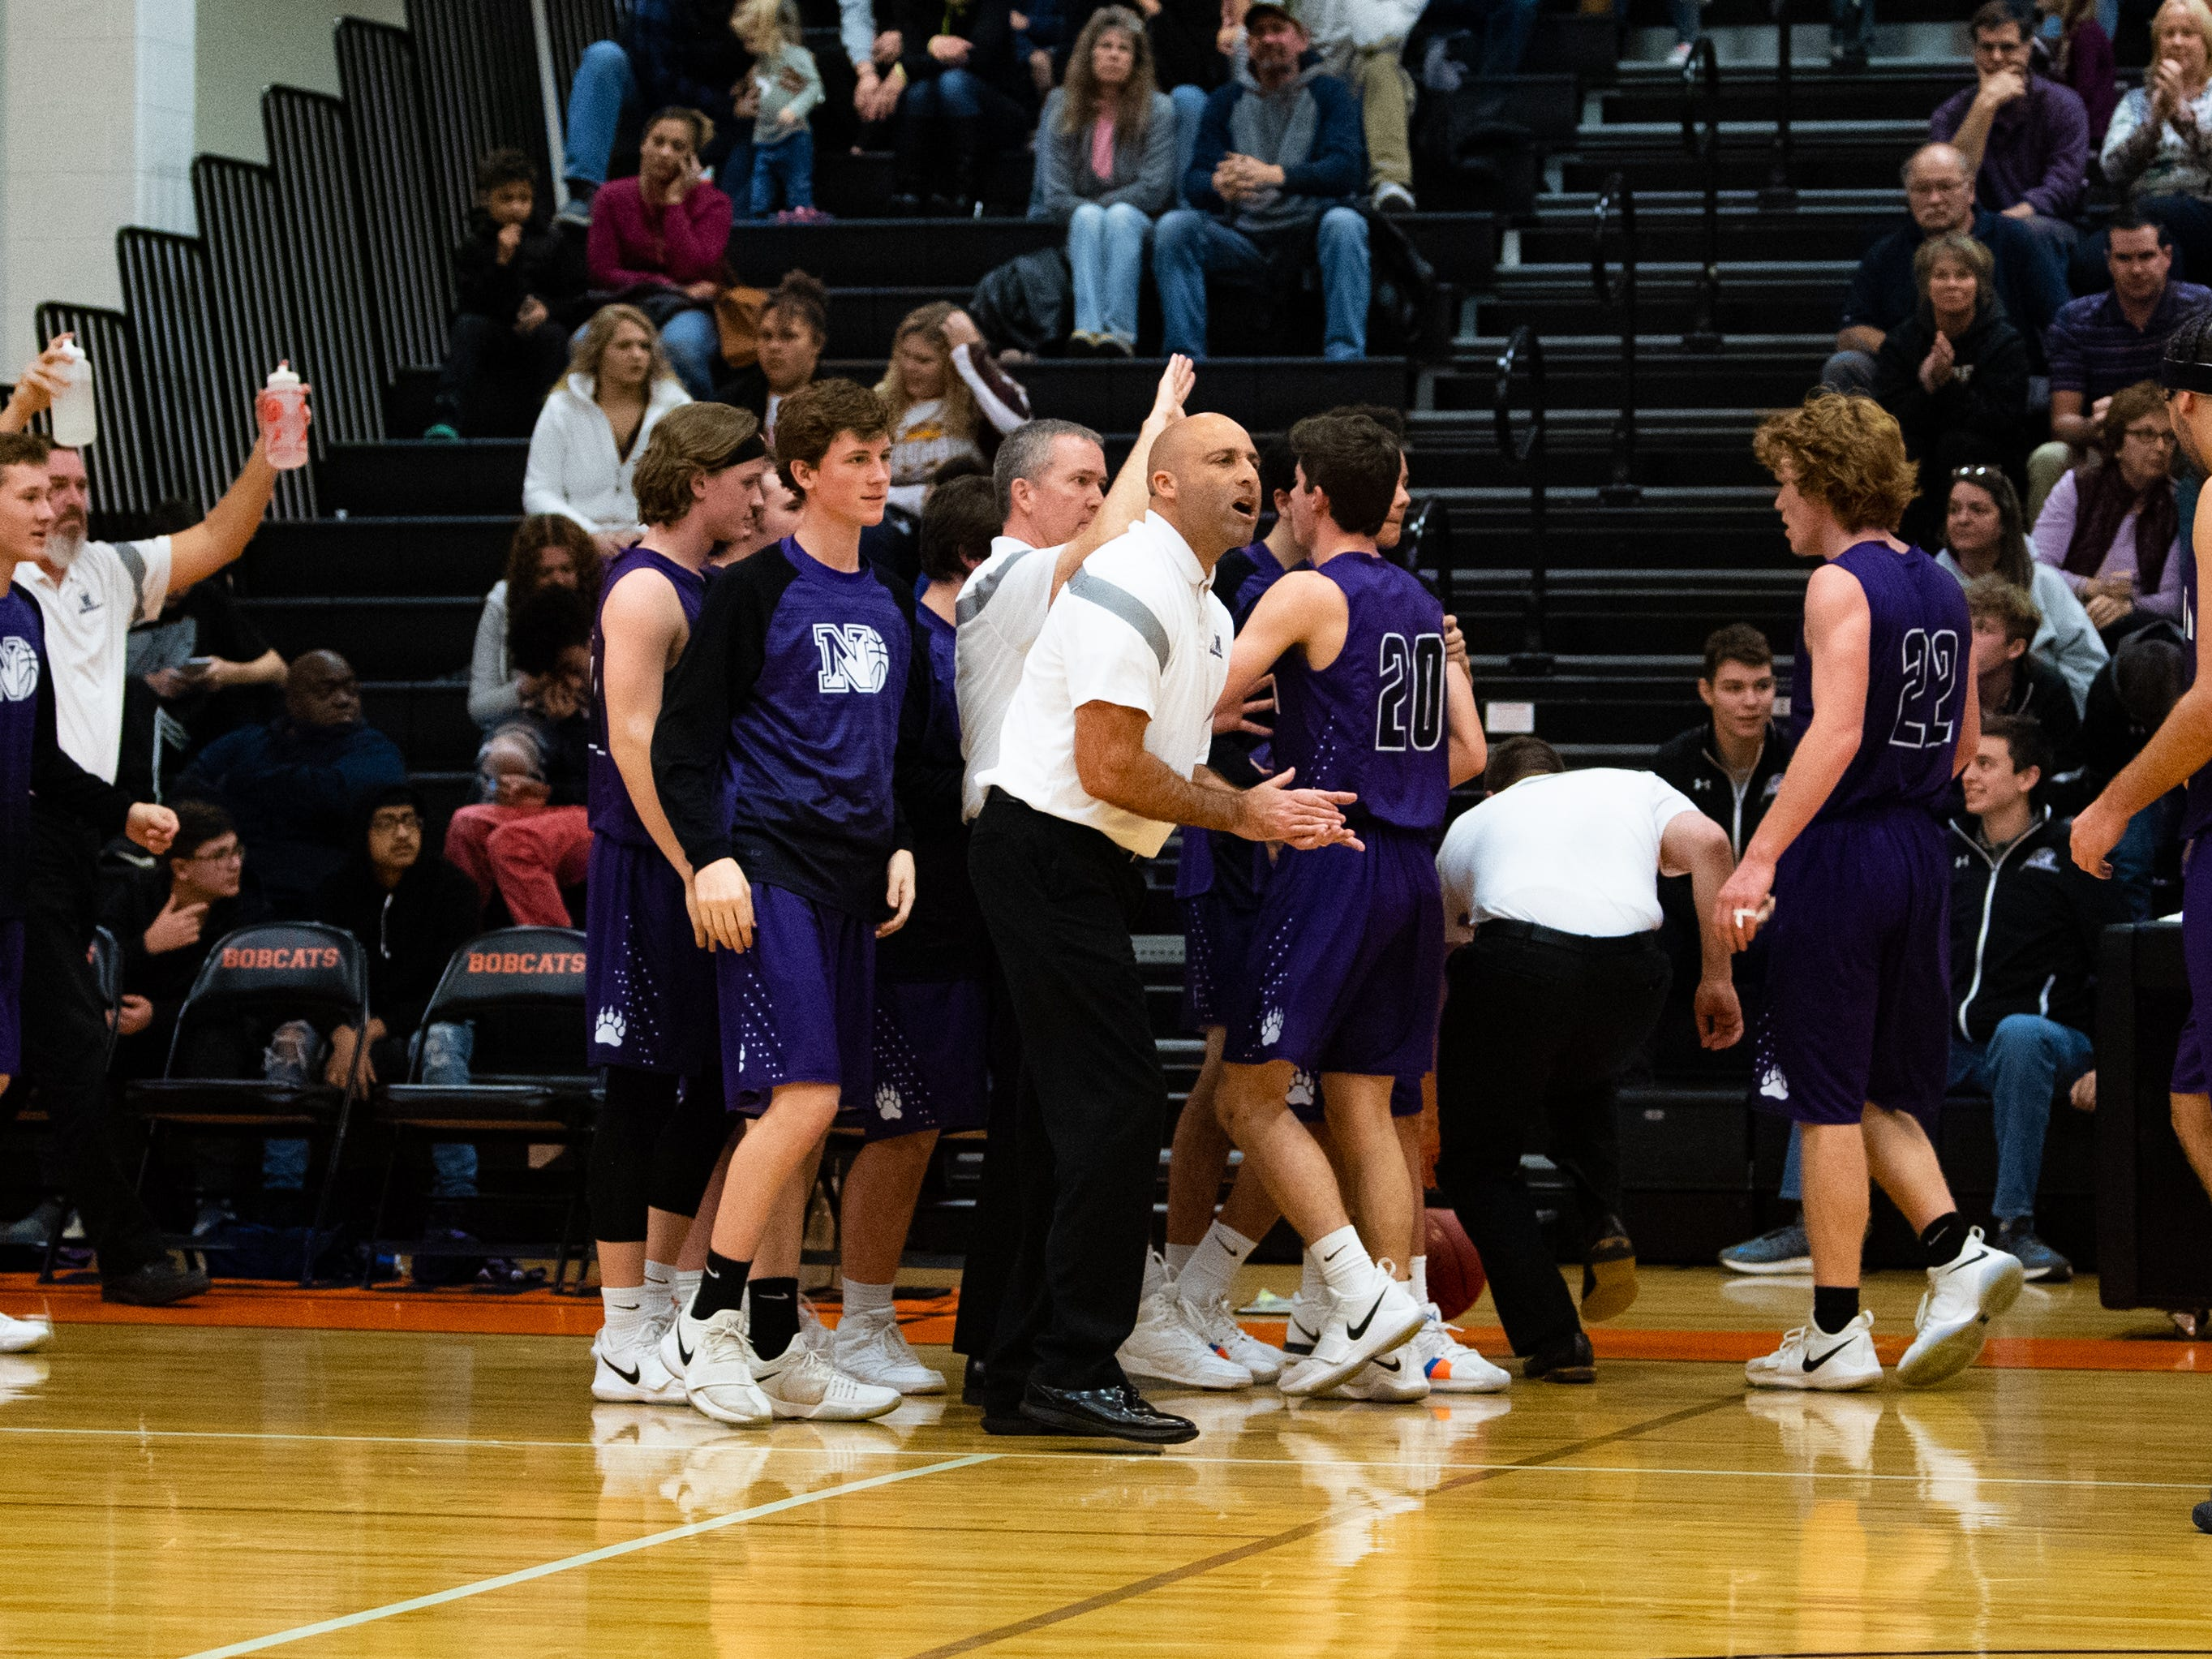 Northern York celebrates during a time-out at Northeastern High School, Friday, December 7, 2018. The Polar Bears defeated the Knights 67 to 53.